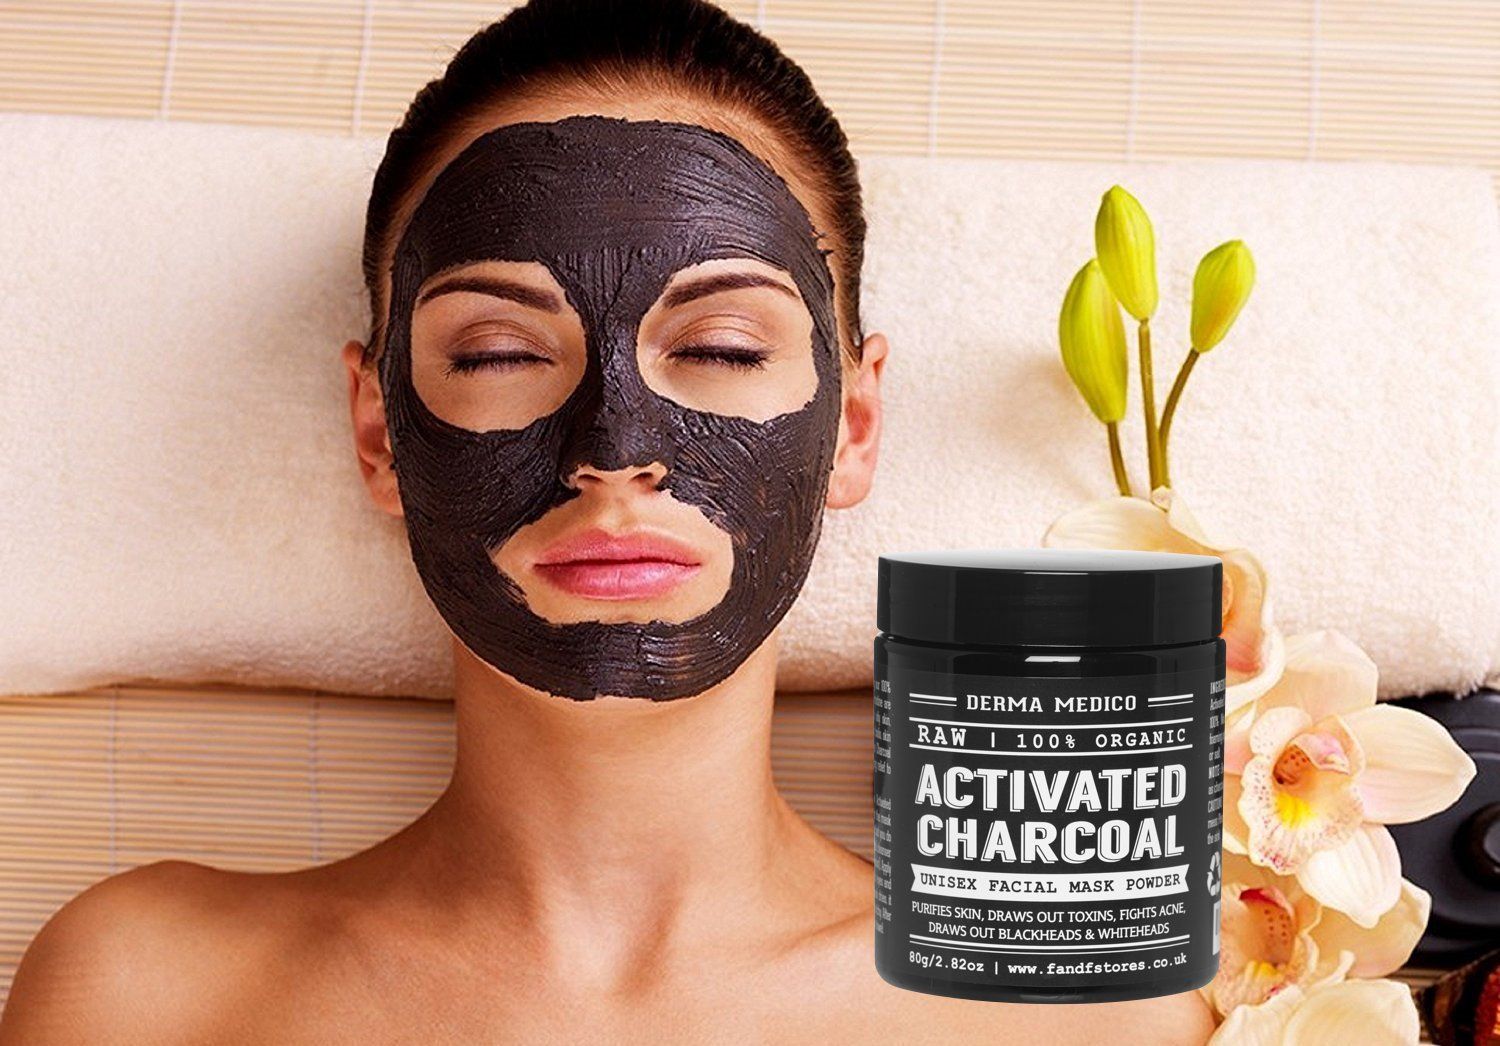 RAW Activated Charcoal Coconut Shell Powder Unisex Facial Mask by Derma Medico - Purifies Skin, Draws out Toxins, Fights Acne, Draws out Blackheads & Whiteheads - Simple DIY Detox & Pore Refining Mask, Easy DIY Body Scrub, 100% Organic, NO